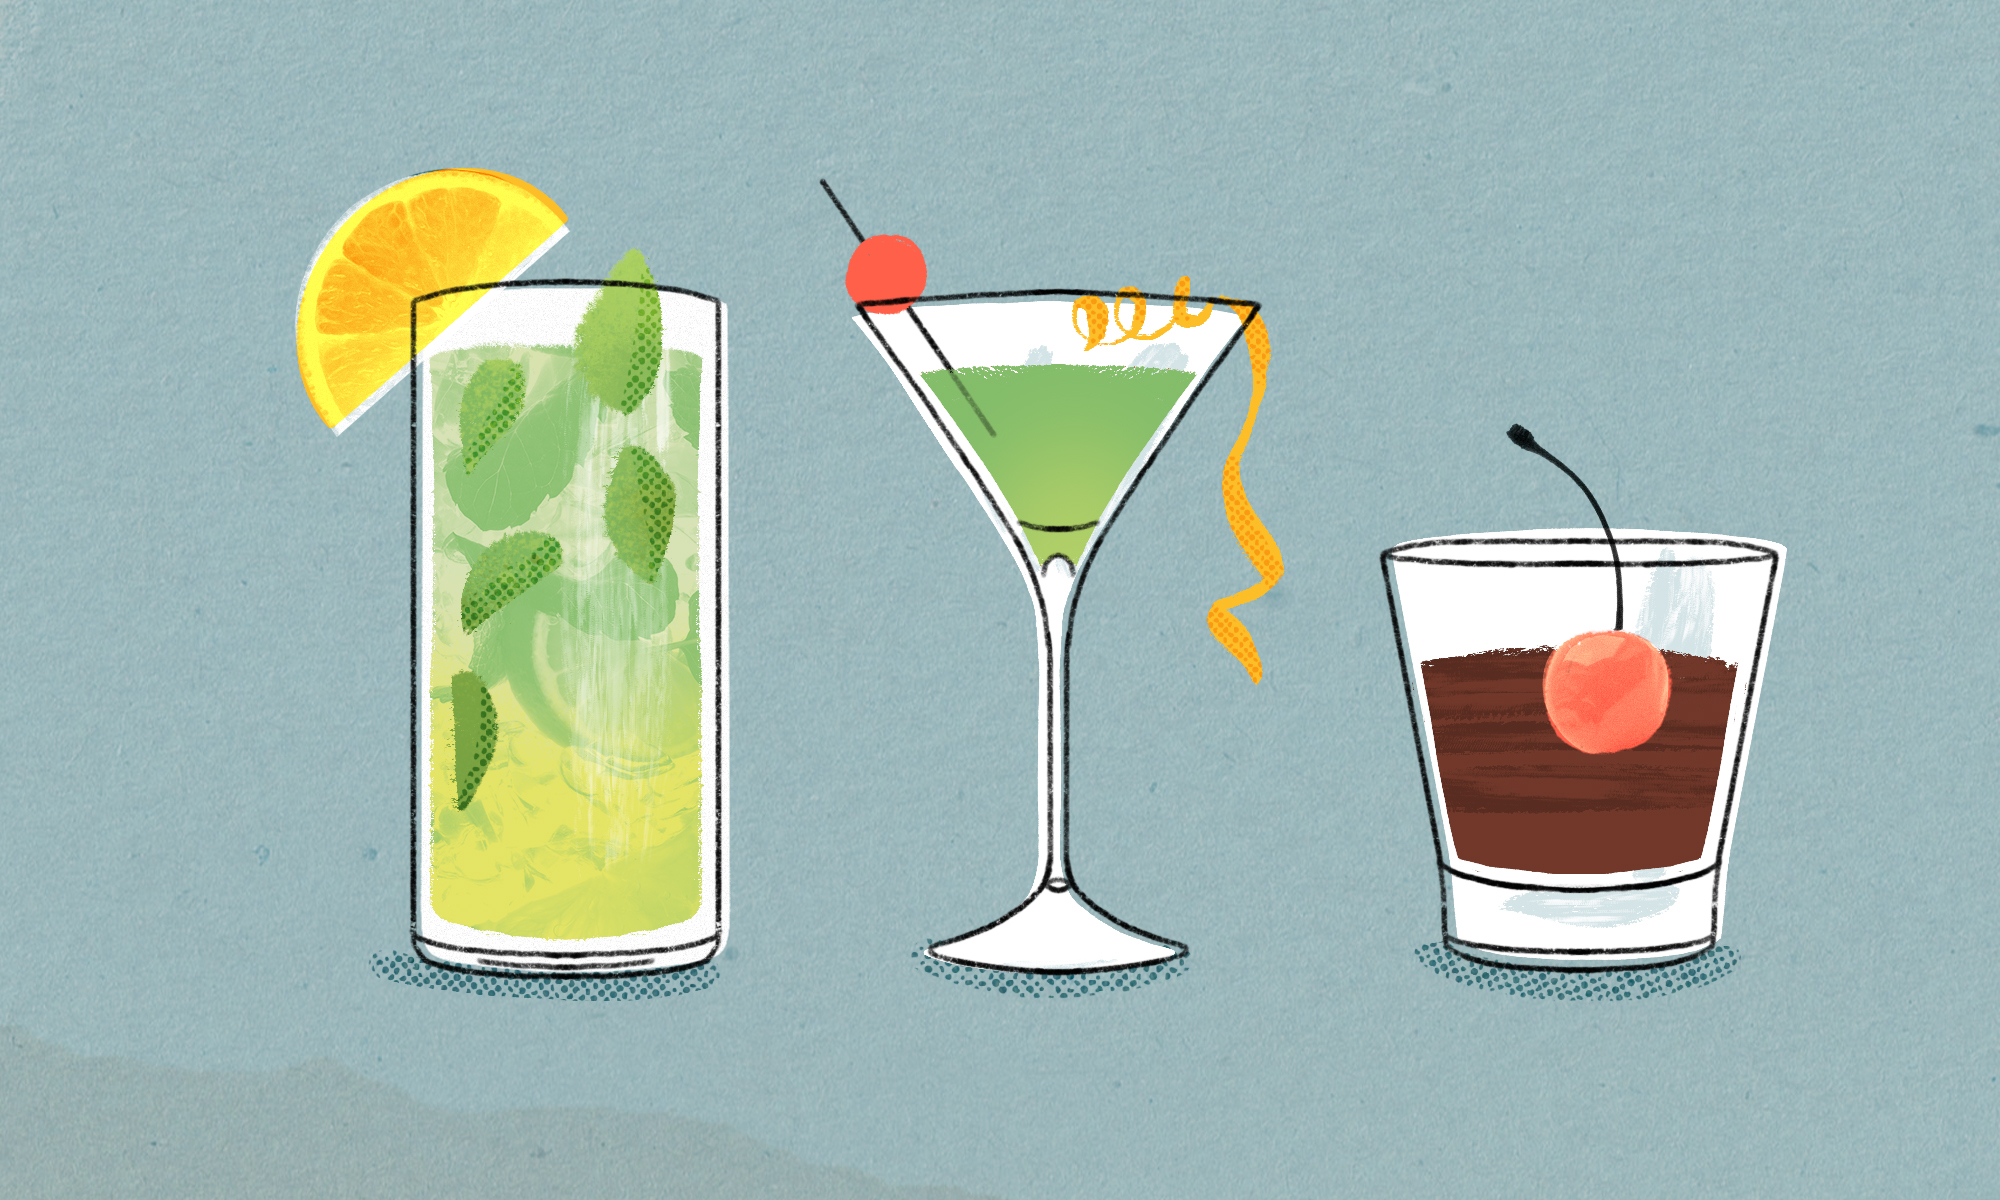 Illustration of three drink glasses: a tall Collins glass containing a green and yellow drink with mint leaves, a martini glass containing a green drink and a curly orange peel, and a short glass containing brown liquid and a cherry floating in it